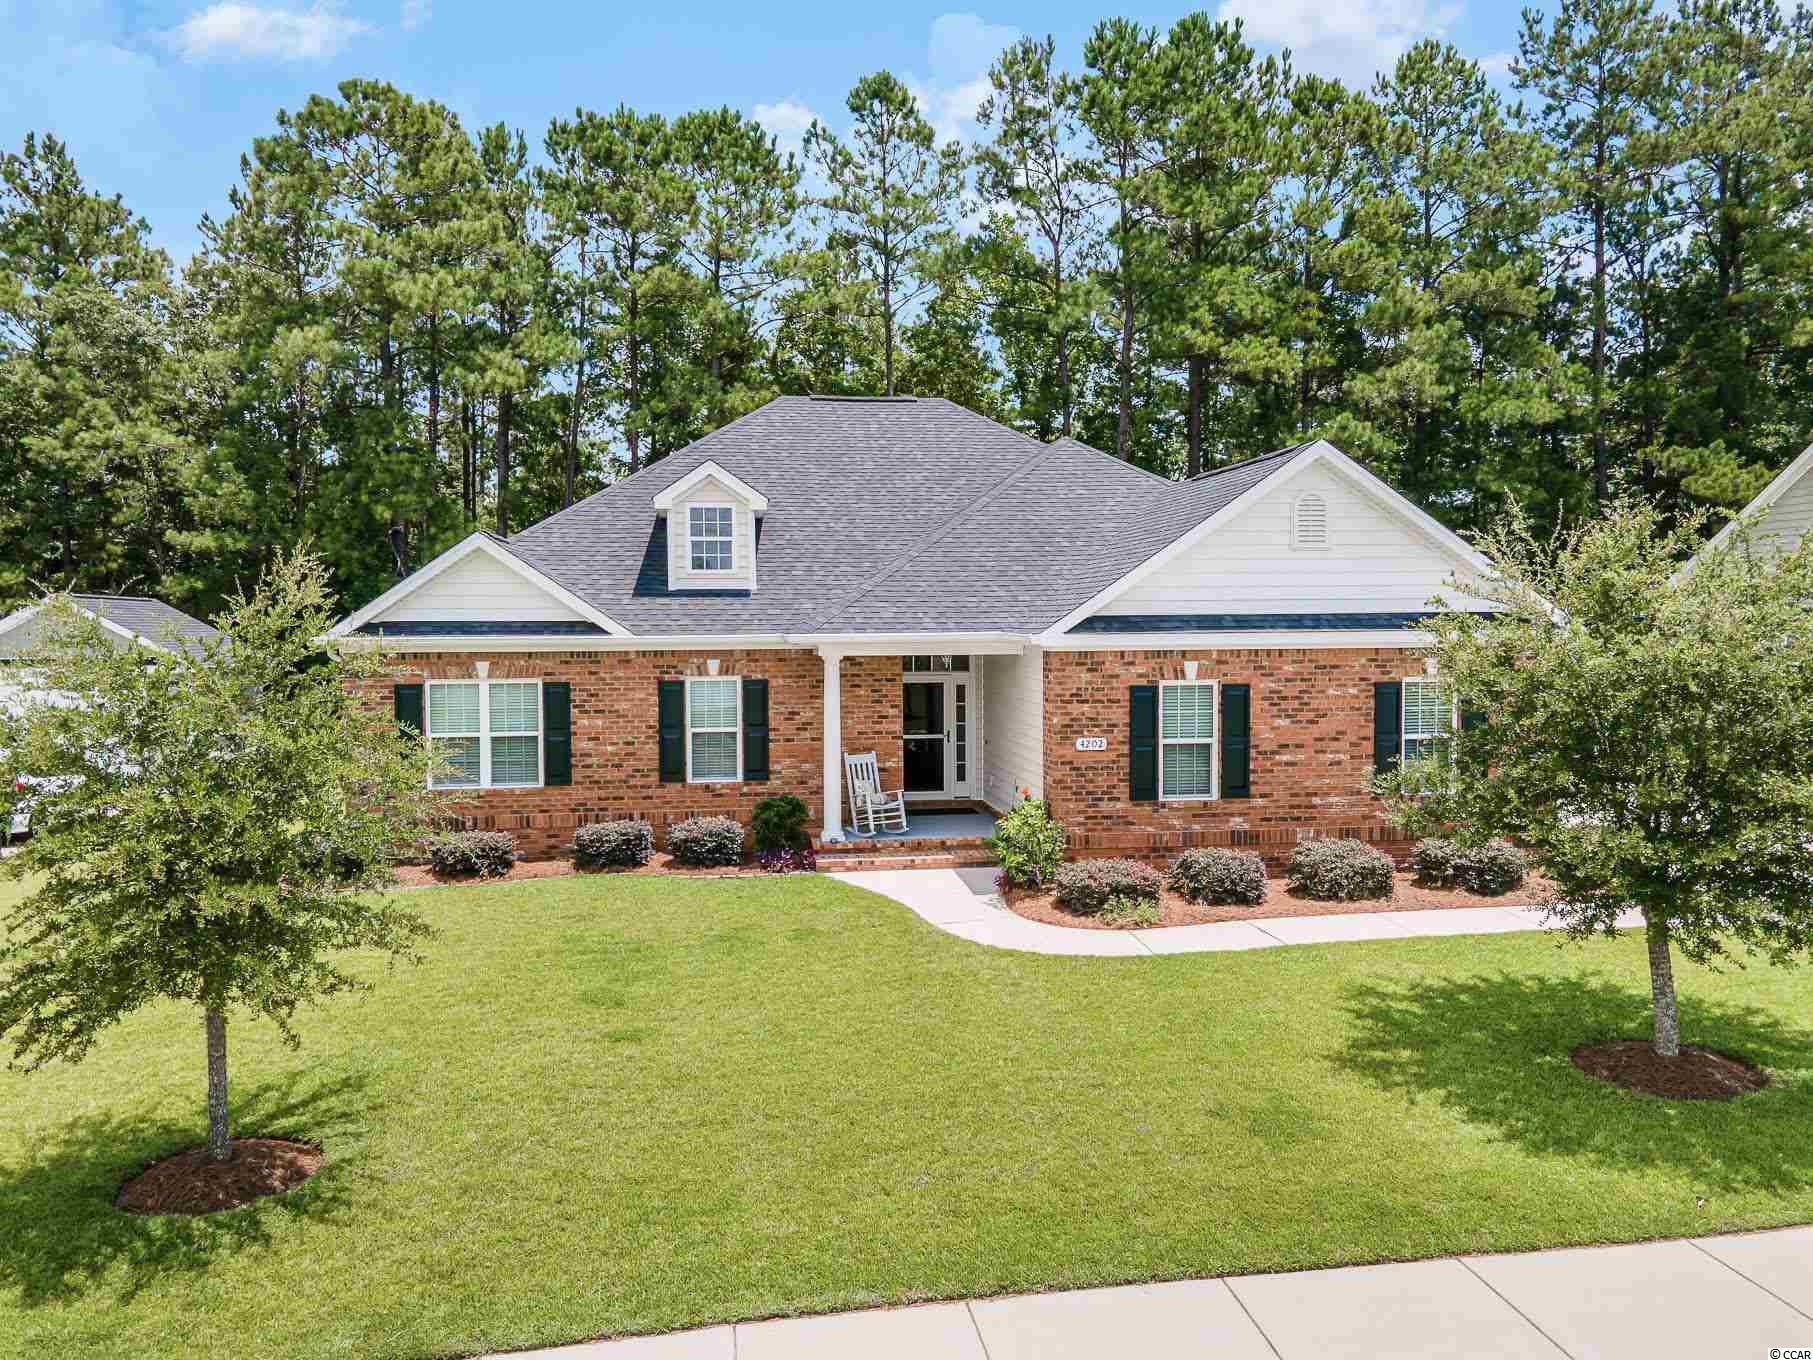 Tired of looking at cookie cutter homes? Here is a beautiful home in Conway built by a reputable custom home builder. This 4 bedroom home has a unique floor plan which offers plenty of storage and room for entertaining. Located in a beautiful area that is both quiet and quaint. The house opens up into a large living space with views of the private yard. The main bedroom offers 3 walk-in closets and 3 good sized guest rooms with split bedroom plan. Features: new American made Whirlpool appliances, chefs kitchen with plenty of cabinets and a large pantry, oversized garage with bead board wainscoting, large screened in porch and arched patio, aluminum fencing with brick columns, irrigation system for the front yard, extended driveway and walkway, great views with a perimeter lot, private back yard with the occasional wild life view, brick front and skirting, beaded vinyl siding, LVP flooring throughout most of the house, shiplap, chair rail and oversized molding.